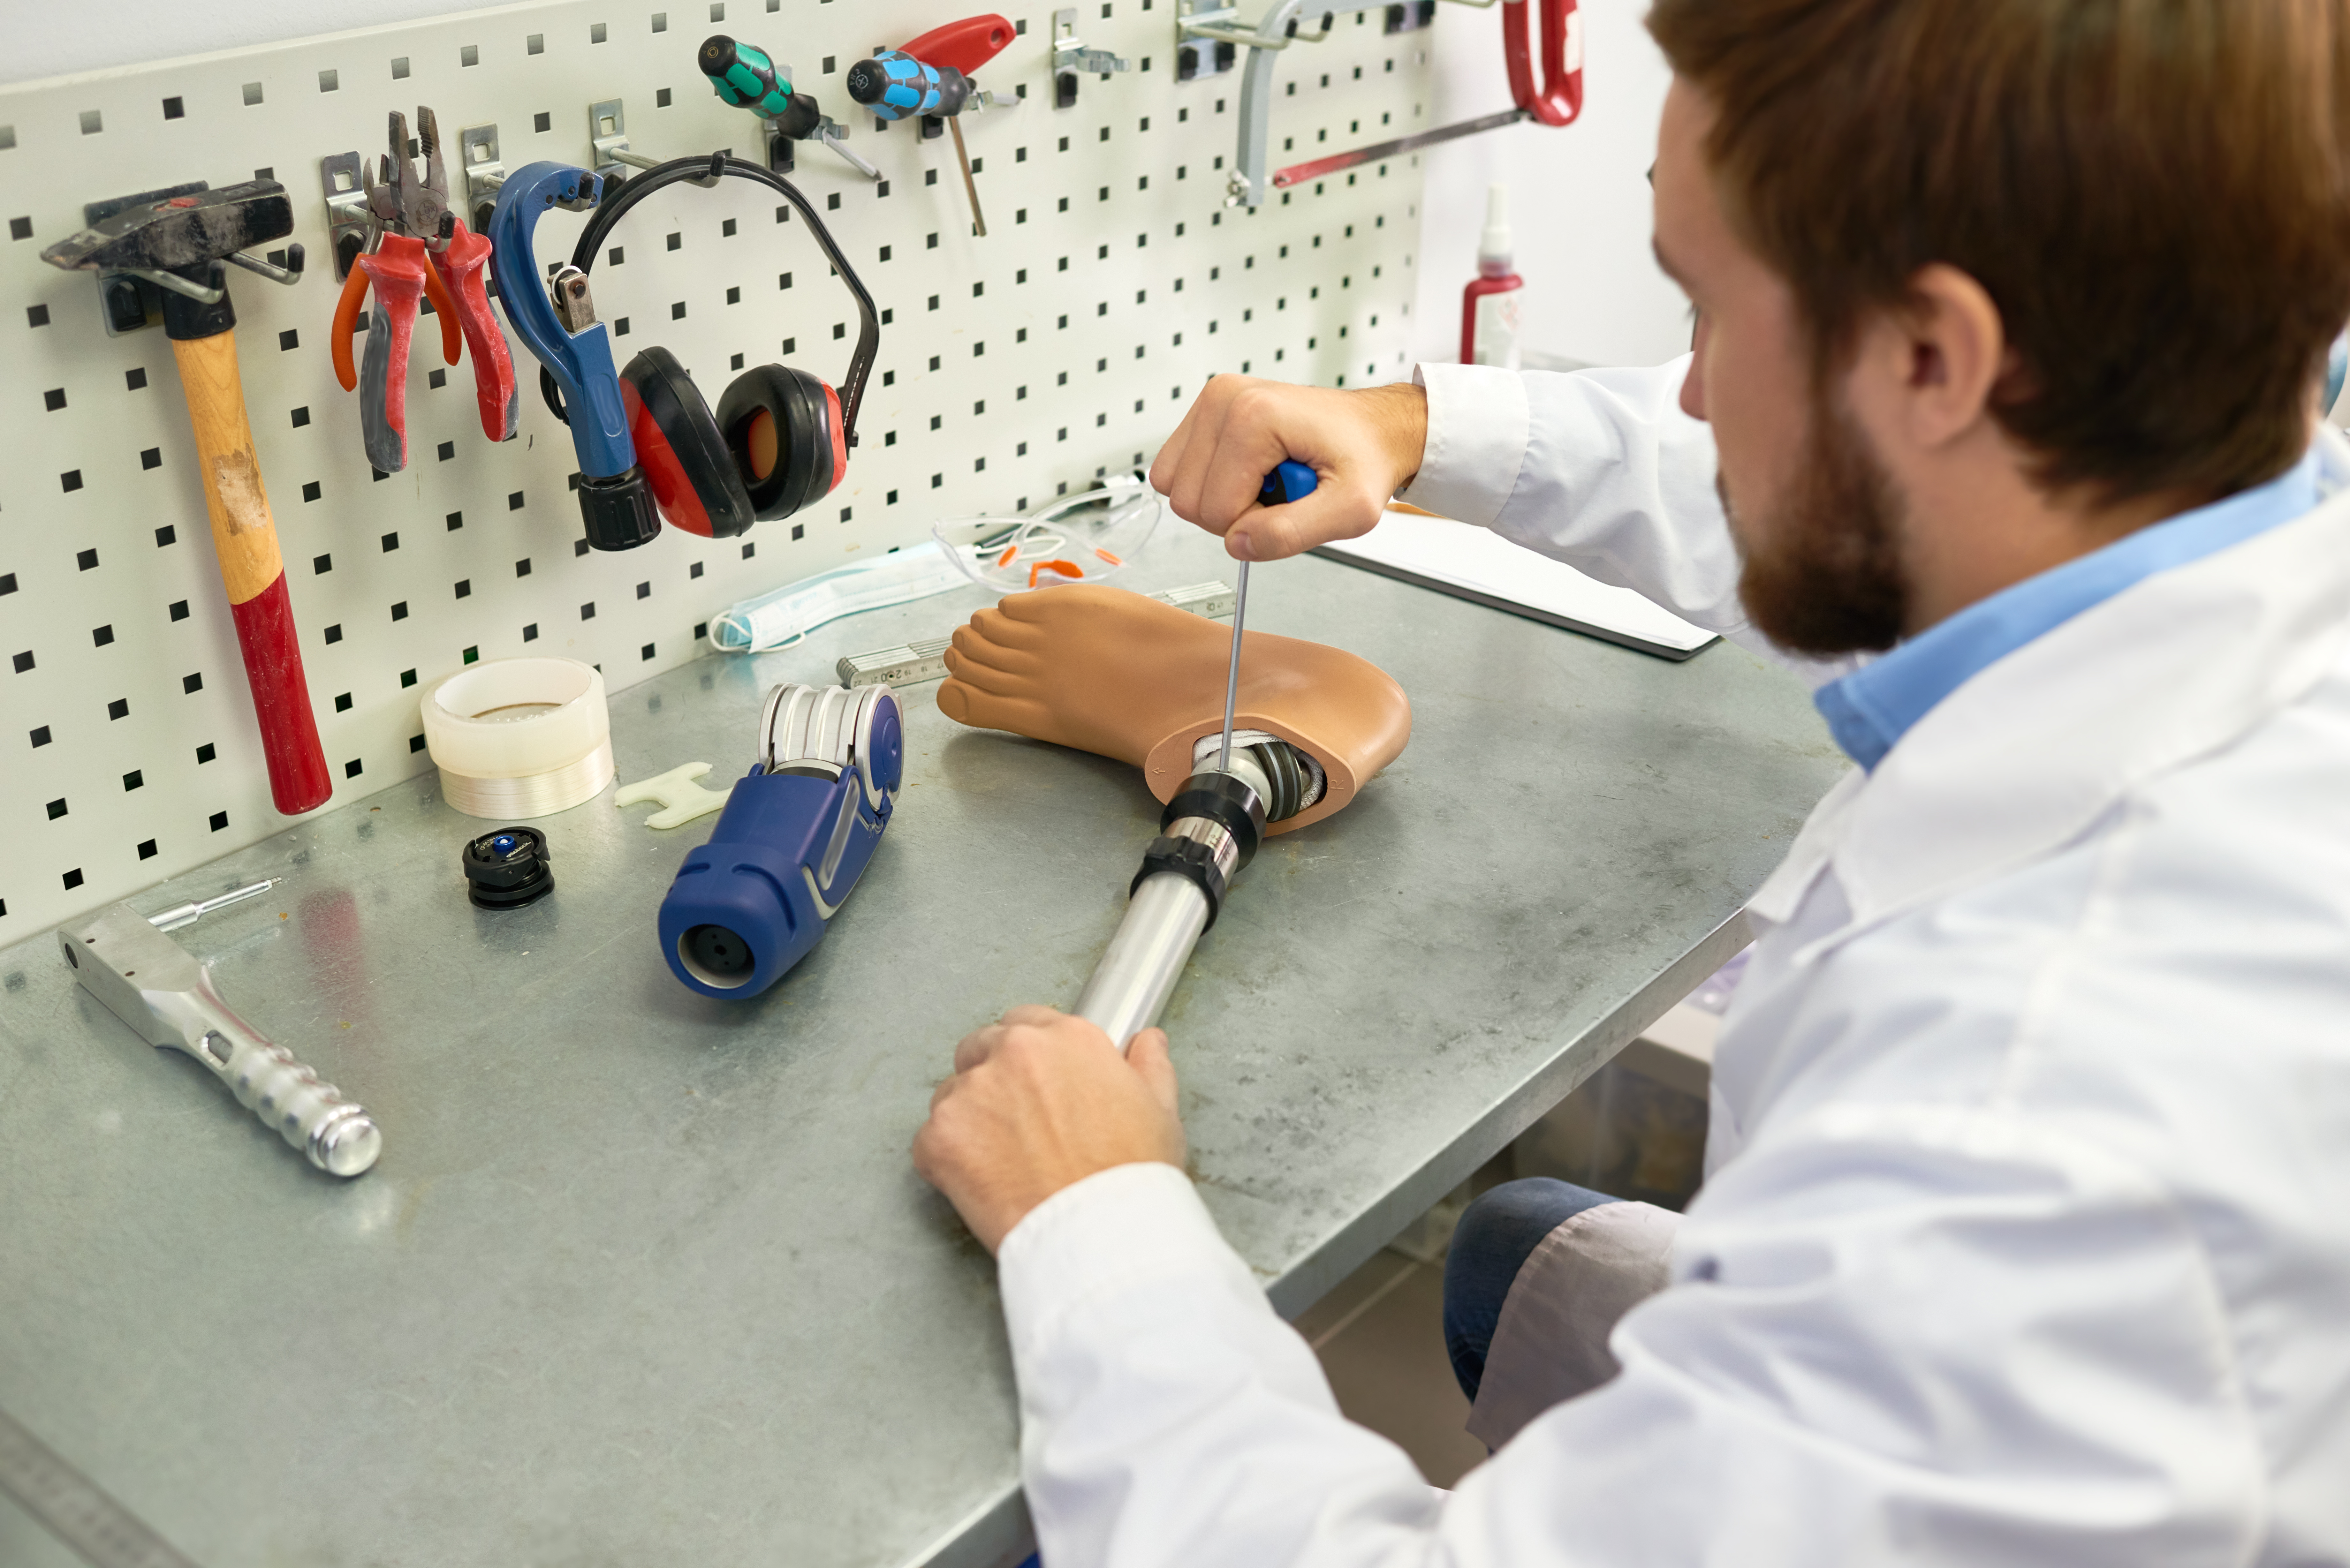 How to Become a Prosthetic Engineer